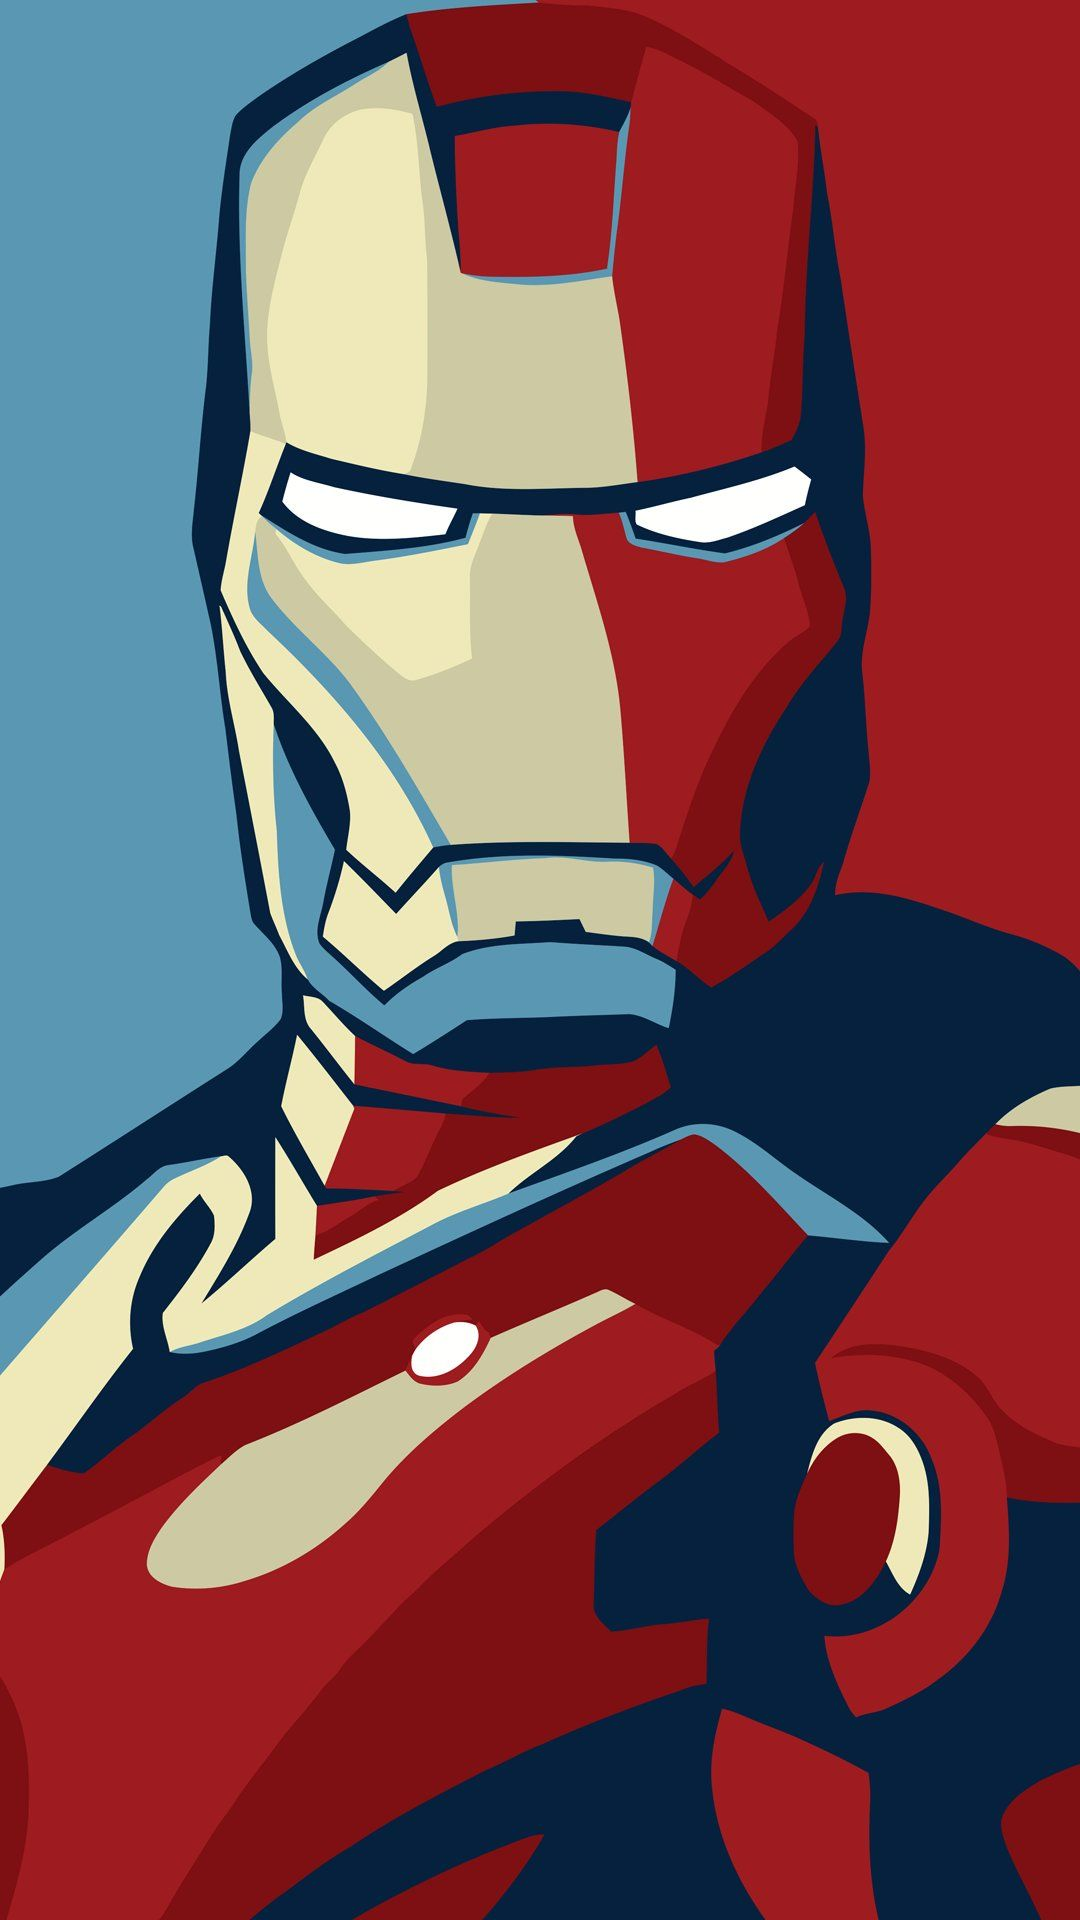 1080x1920 10 HD Iron Man iPhone 6 Wallpapers - The Nology